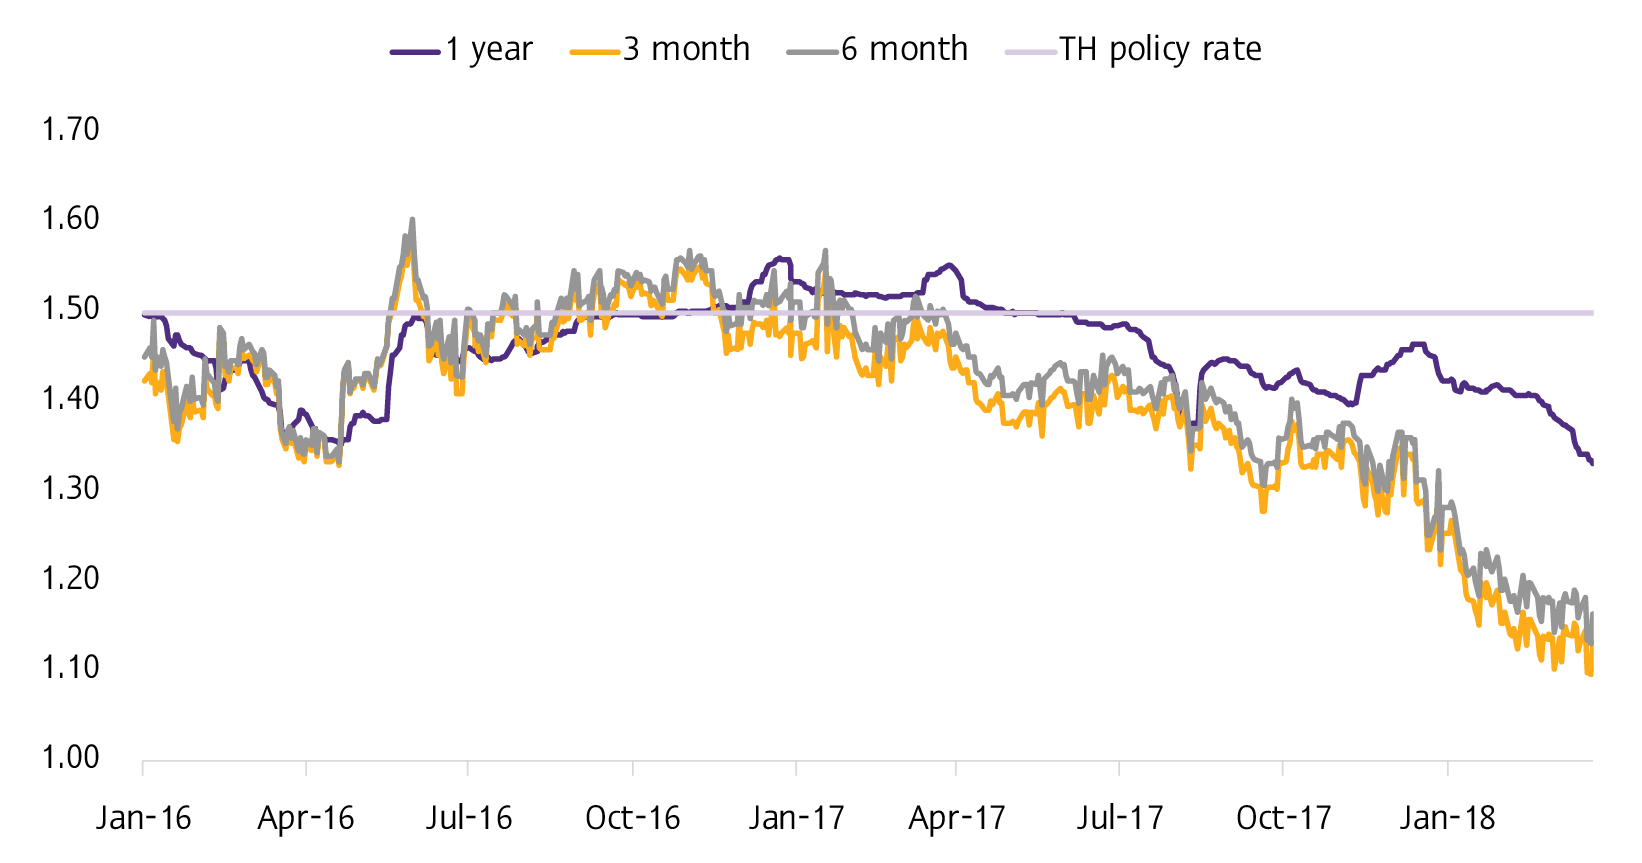 Outlook_TH_Q2_2018_TH_Policy rate1.jpg